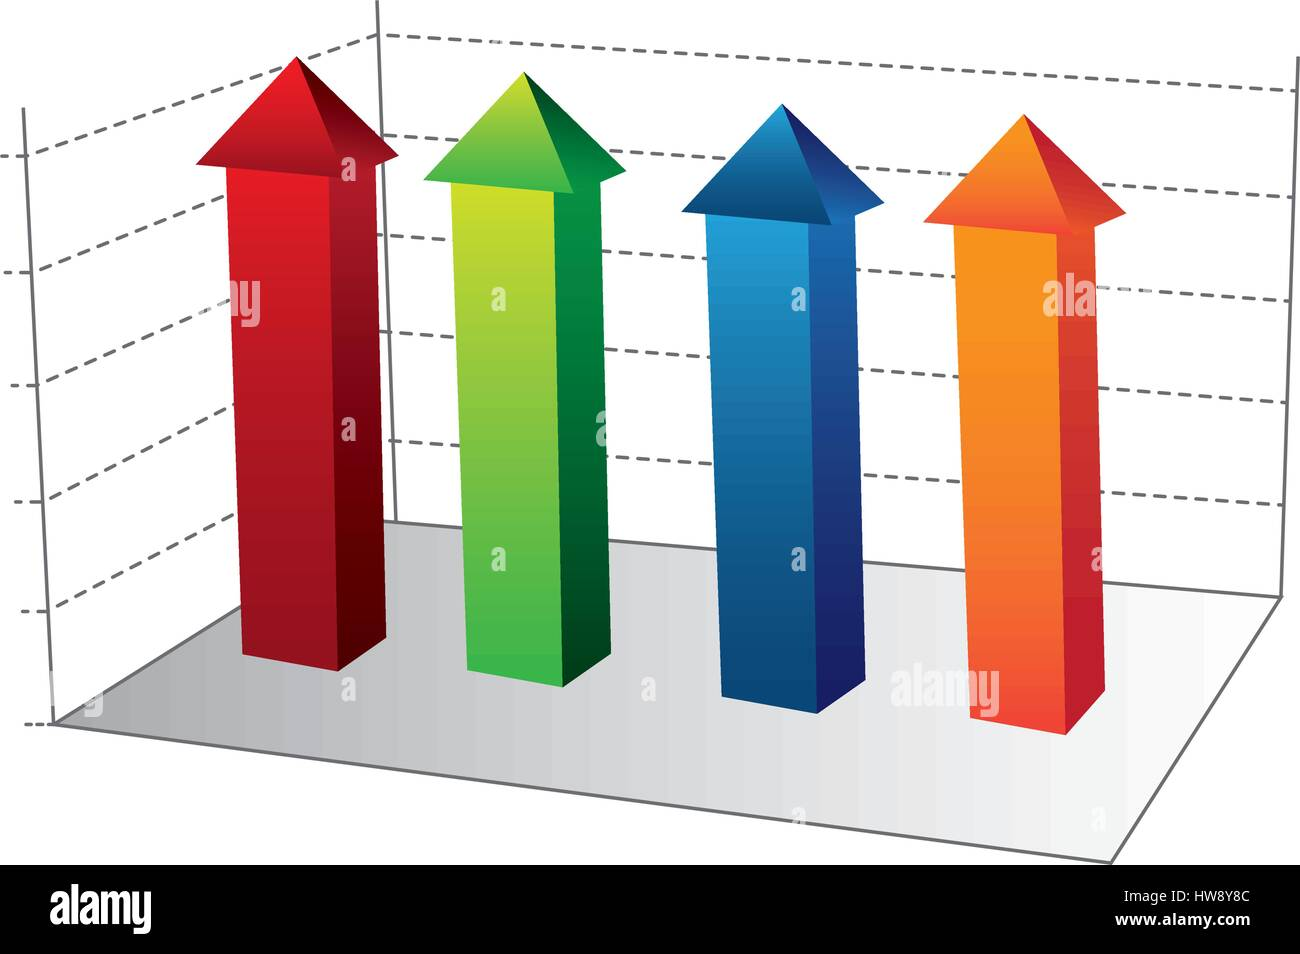 business data statistic graphic - Stock Image